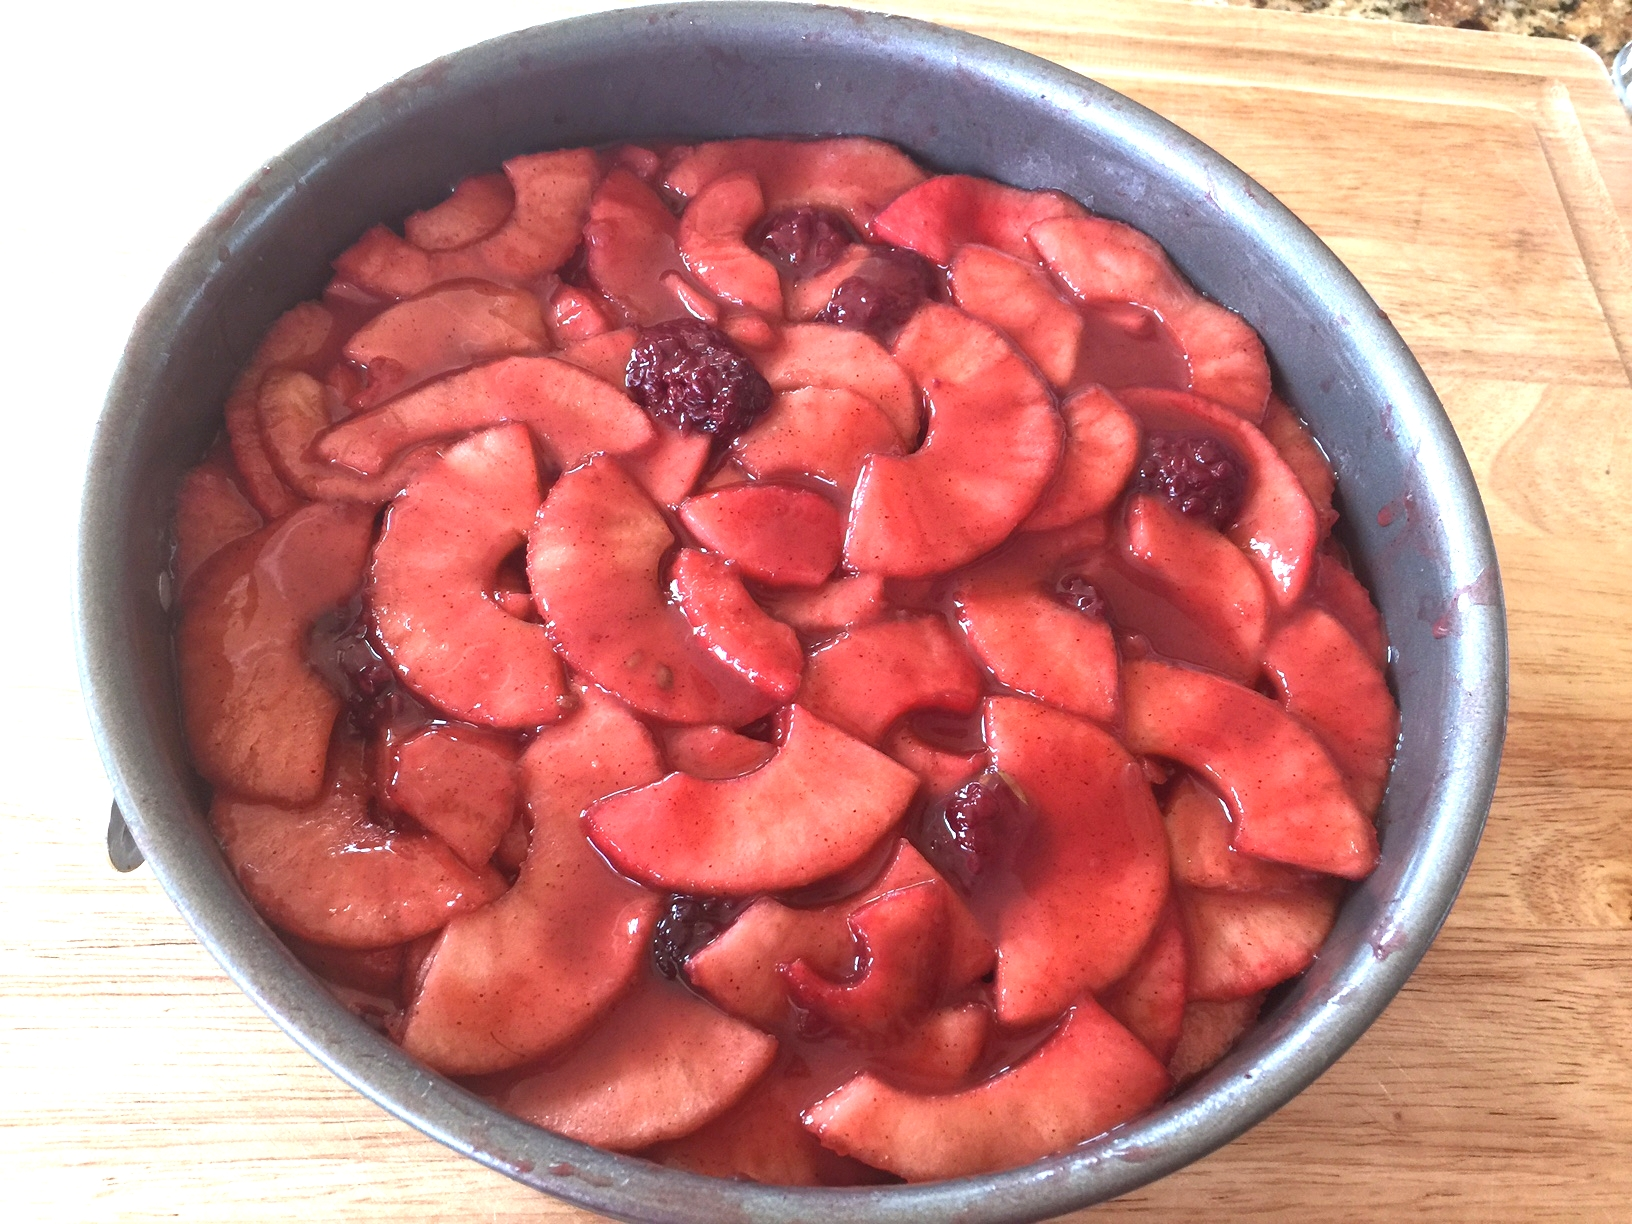 Apples and blackberries layered in the pan